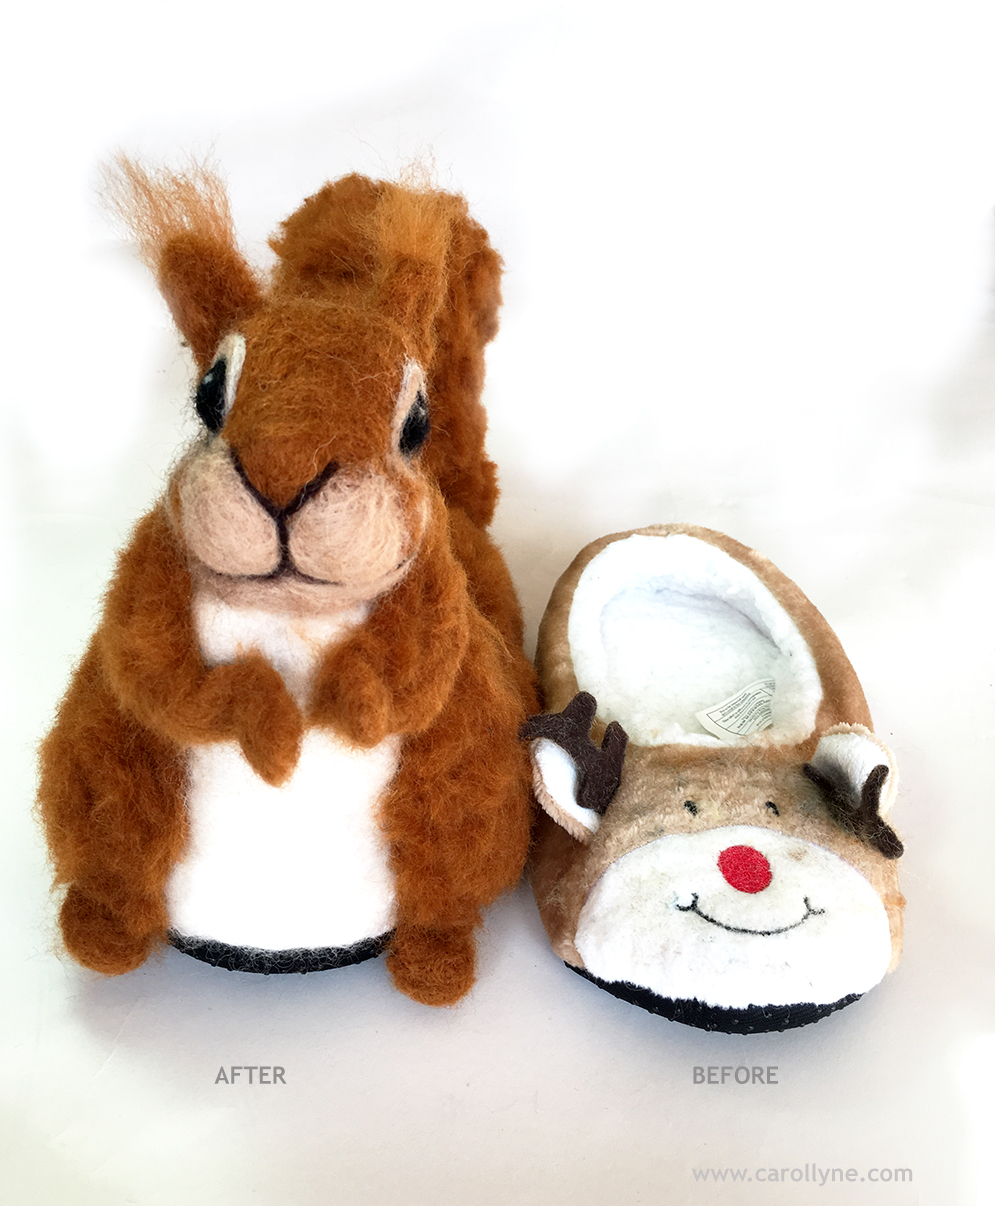 Before and After. Reindeer Slipper transformed into Squirrel.